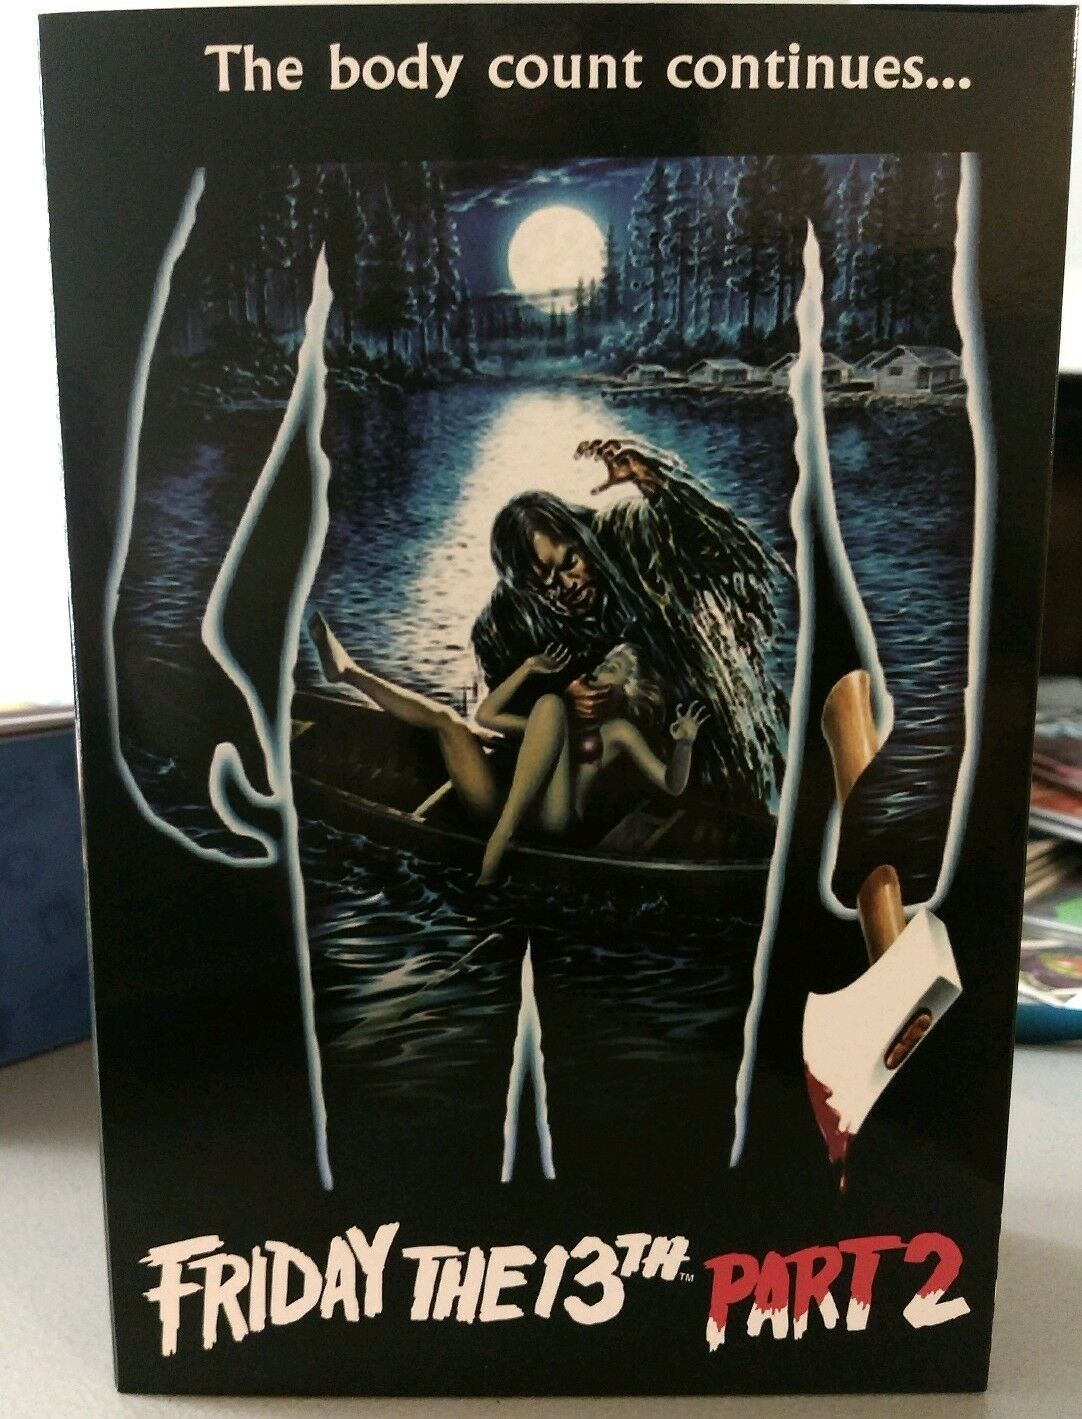 NECA Friday the 13th Part 2 Jason Voorhees Figure. Signed by Warrington Gillette